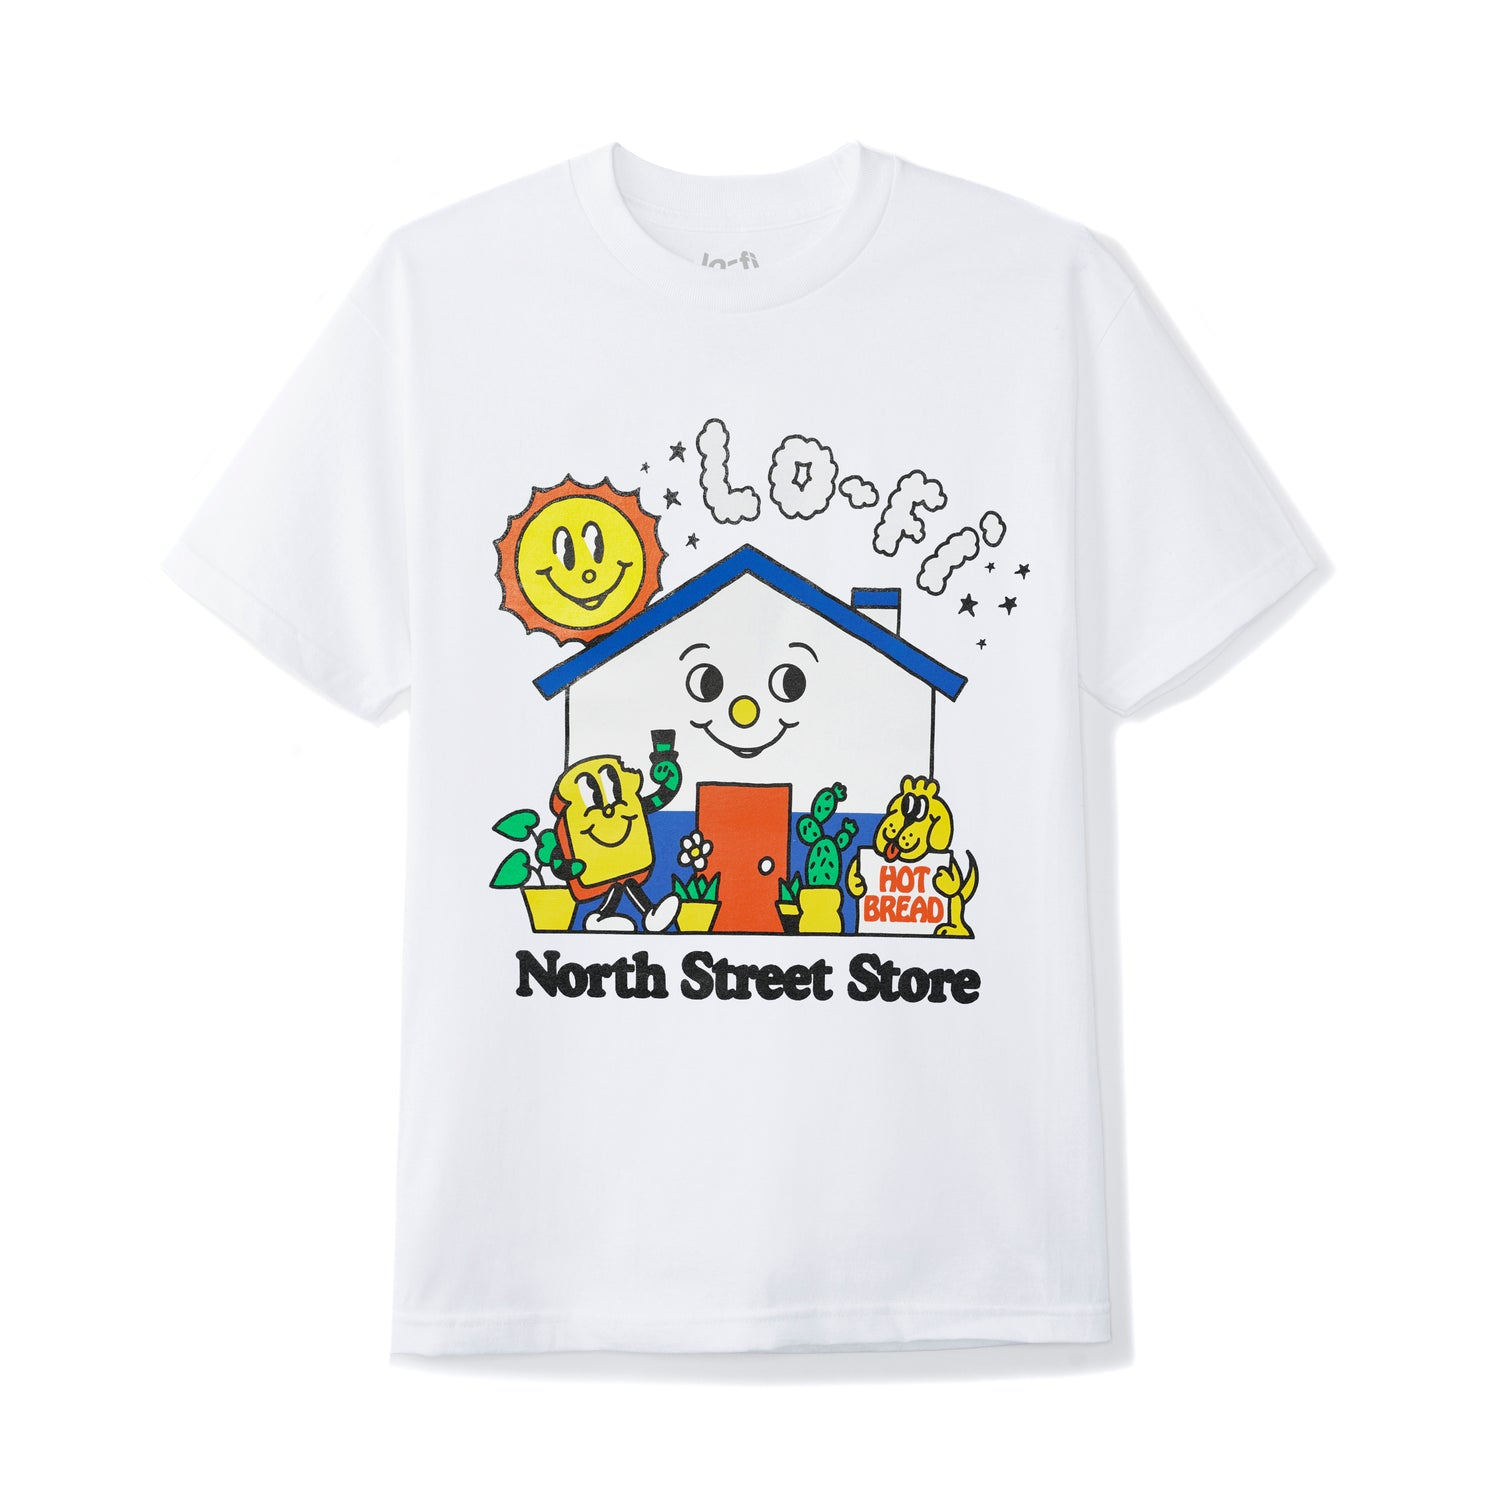 Lo-Fi / North Street Store Tee, White